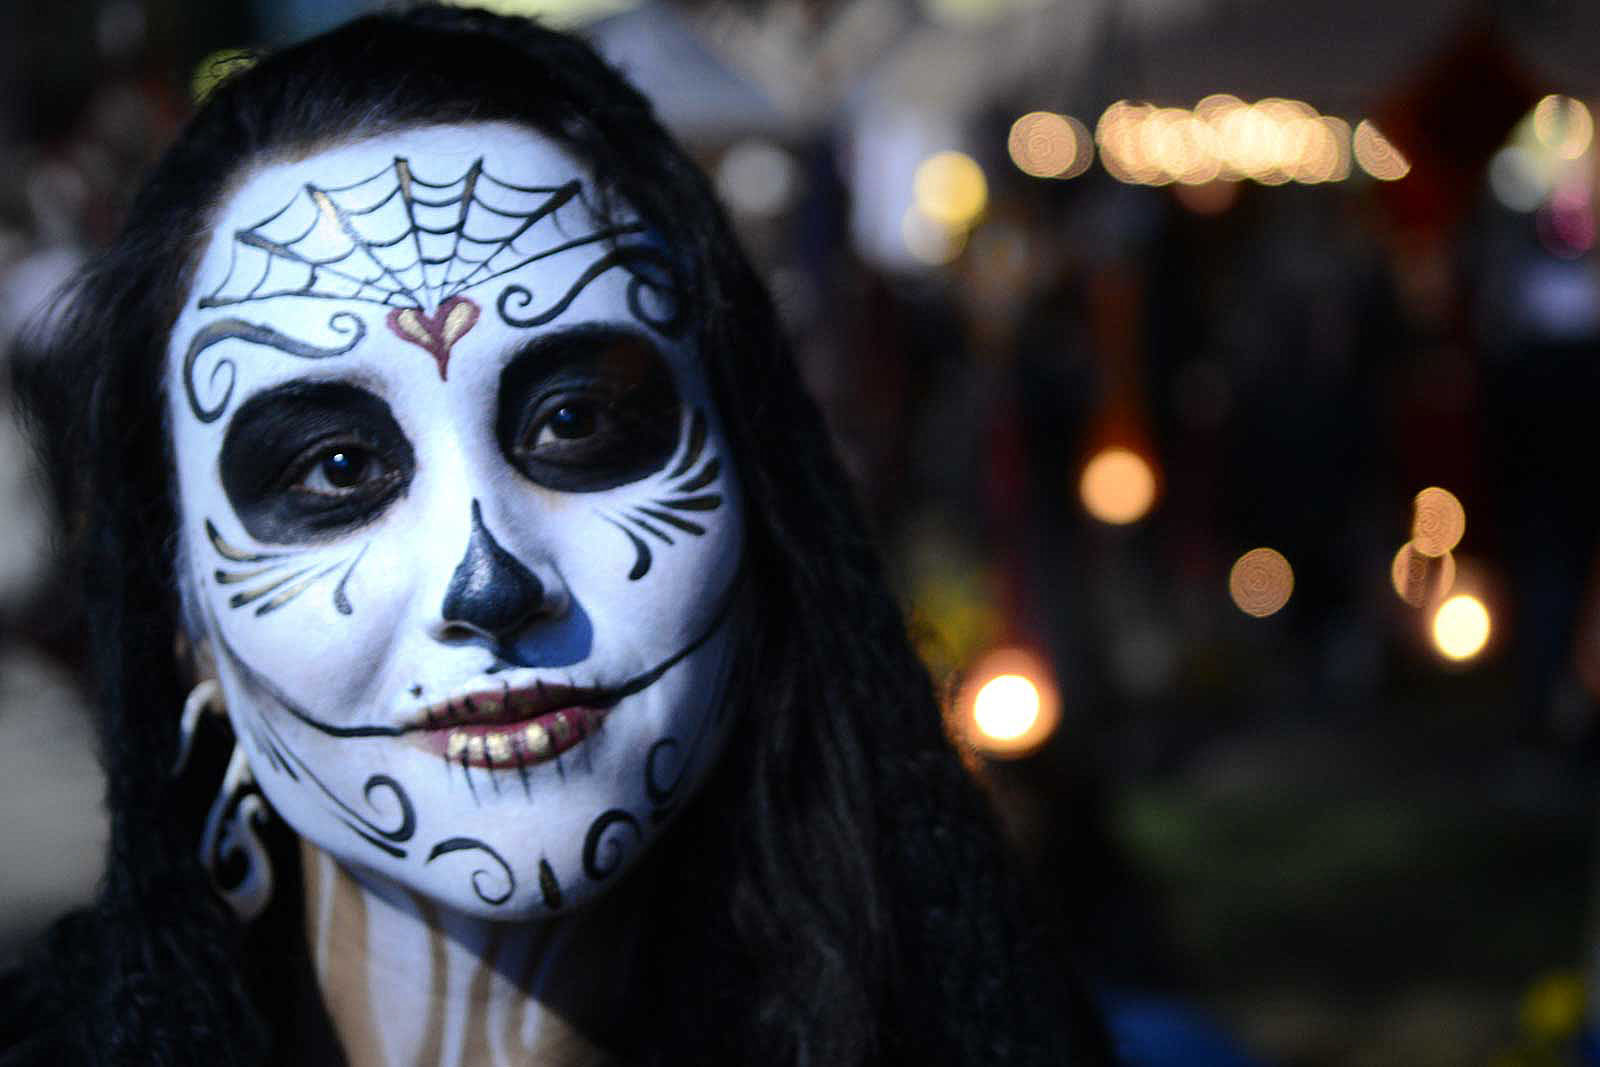 Neighborhood Notes: Weekend Dia de los Muertos celebrations around the Mission